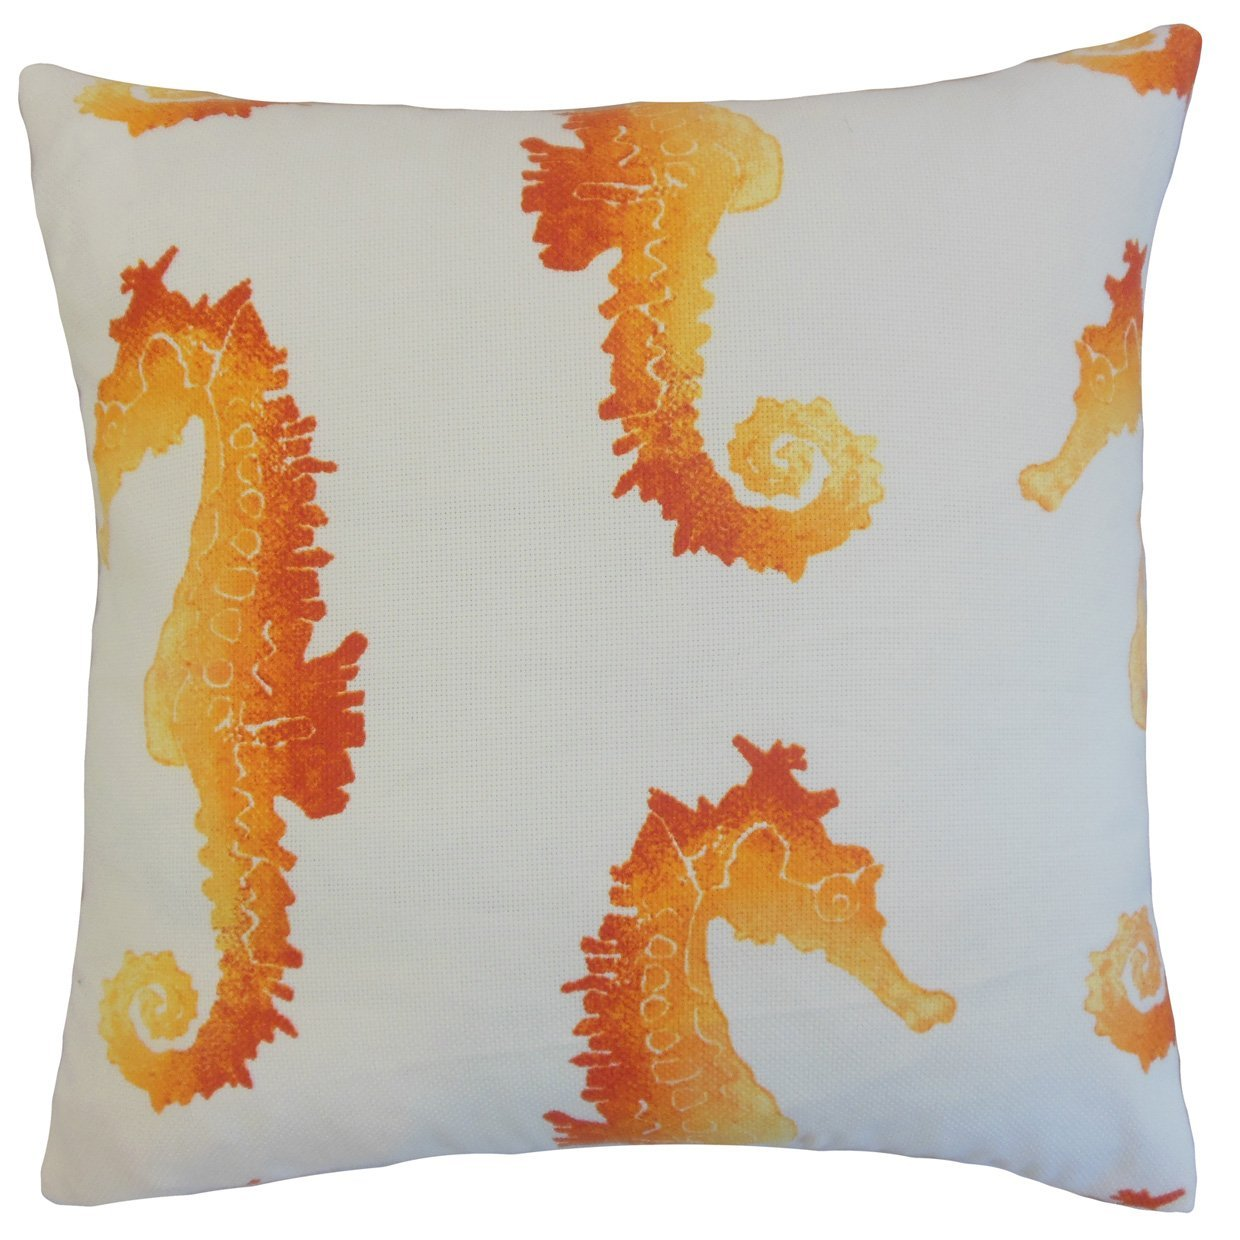 Orange Outdoor Graphic Contemporary Throw Pillow Cover